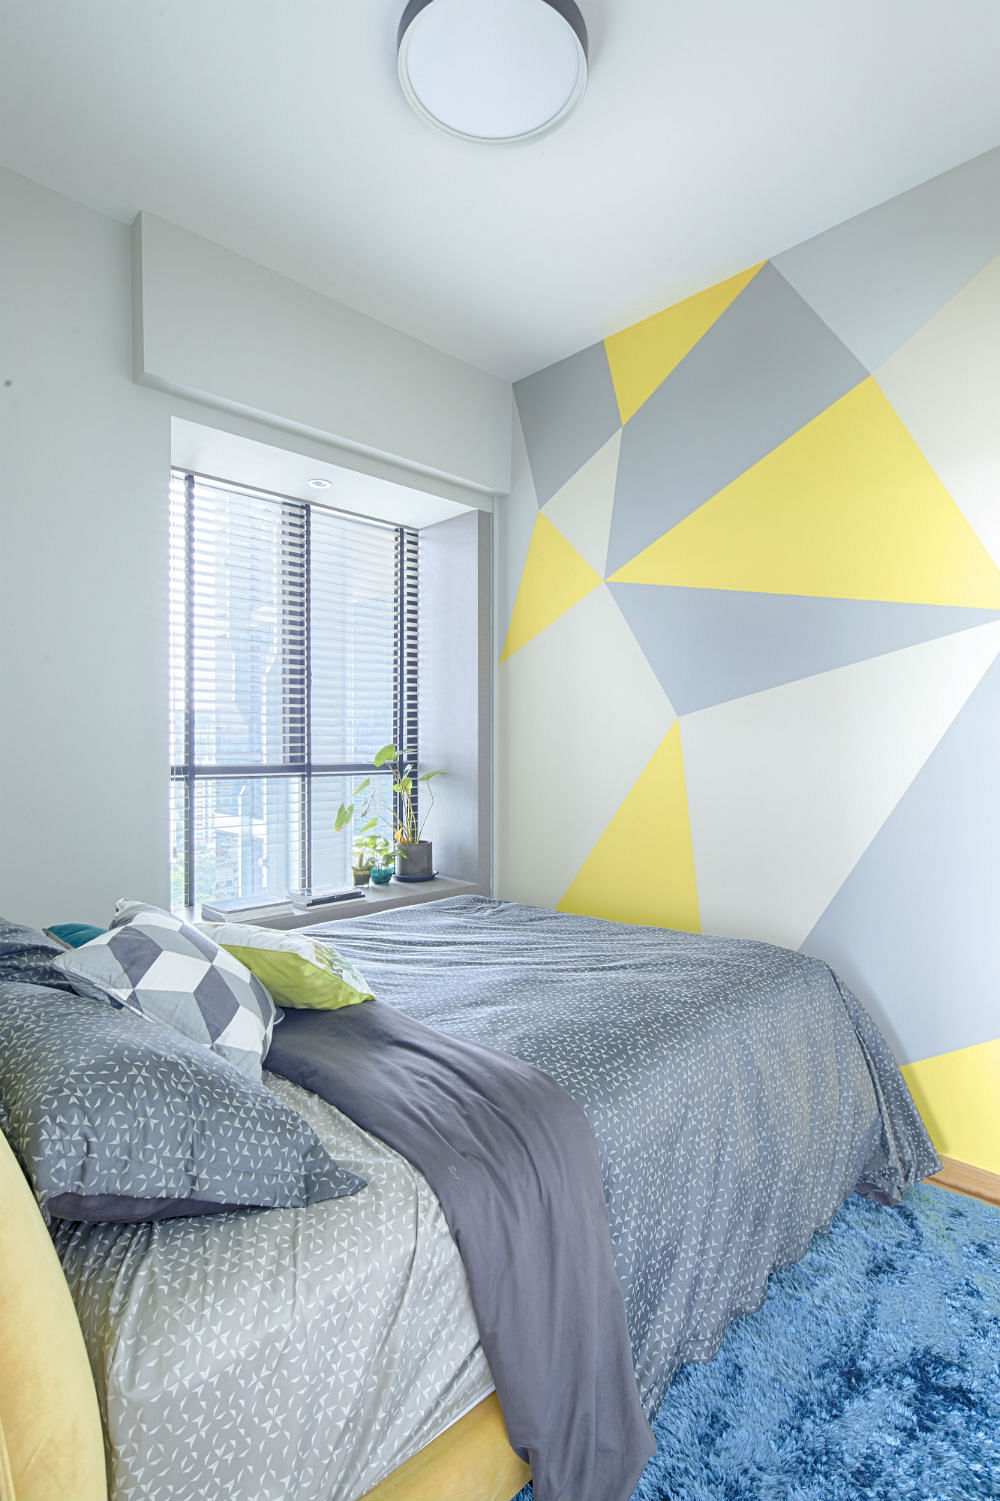 A great diy paint idea for your walls home decor Painting geometric patterns on walls